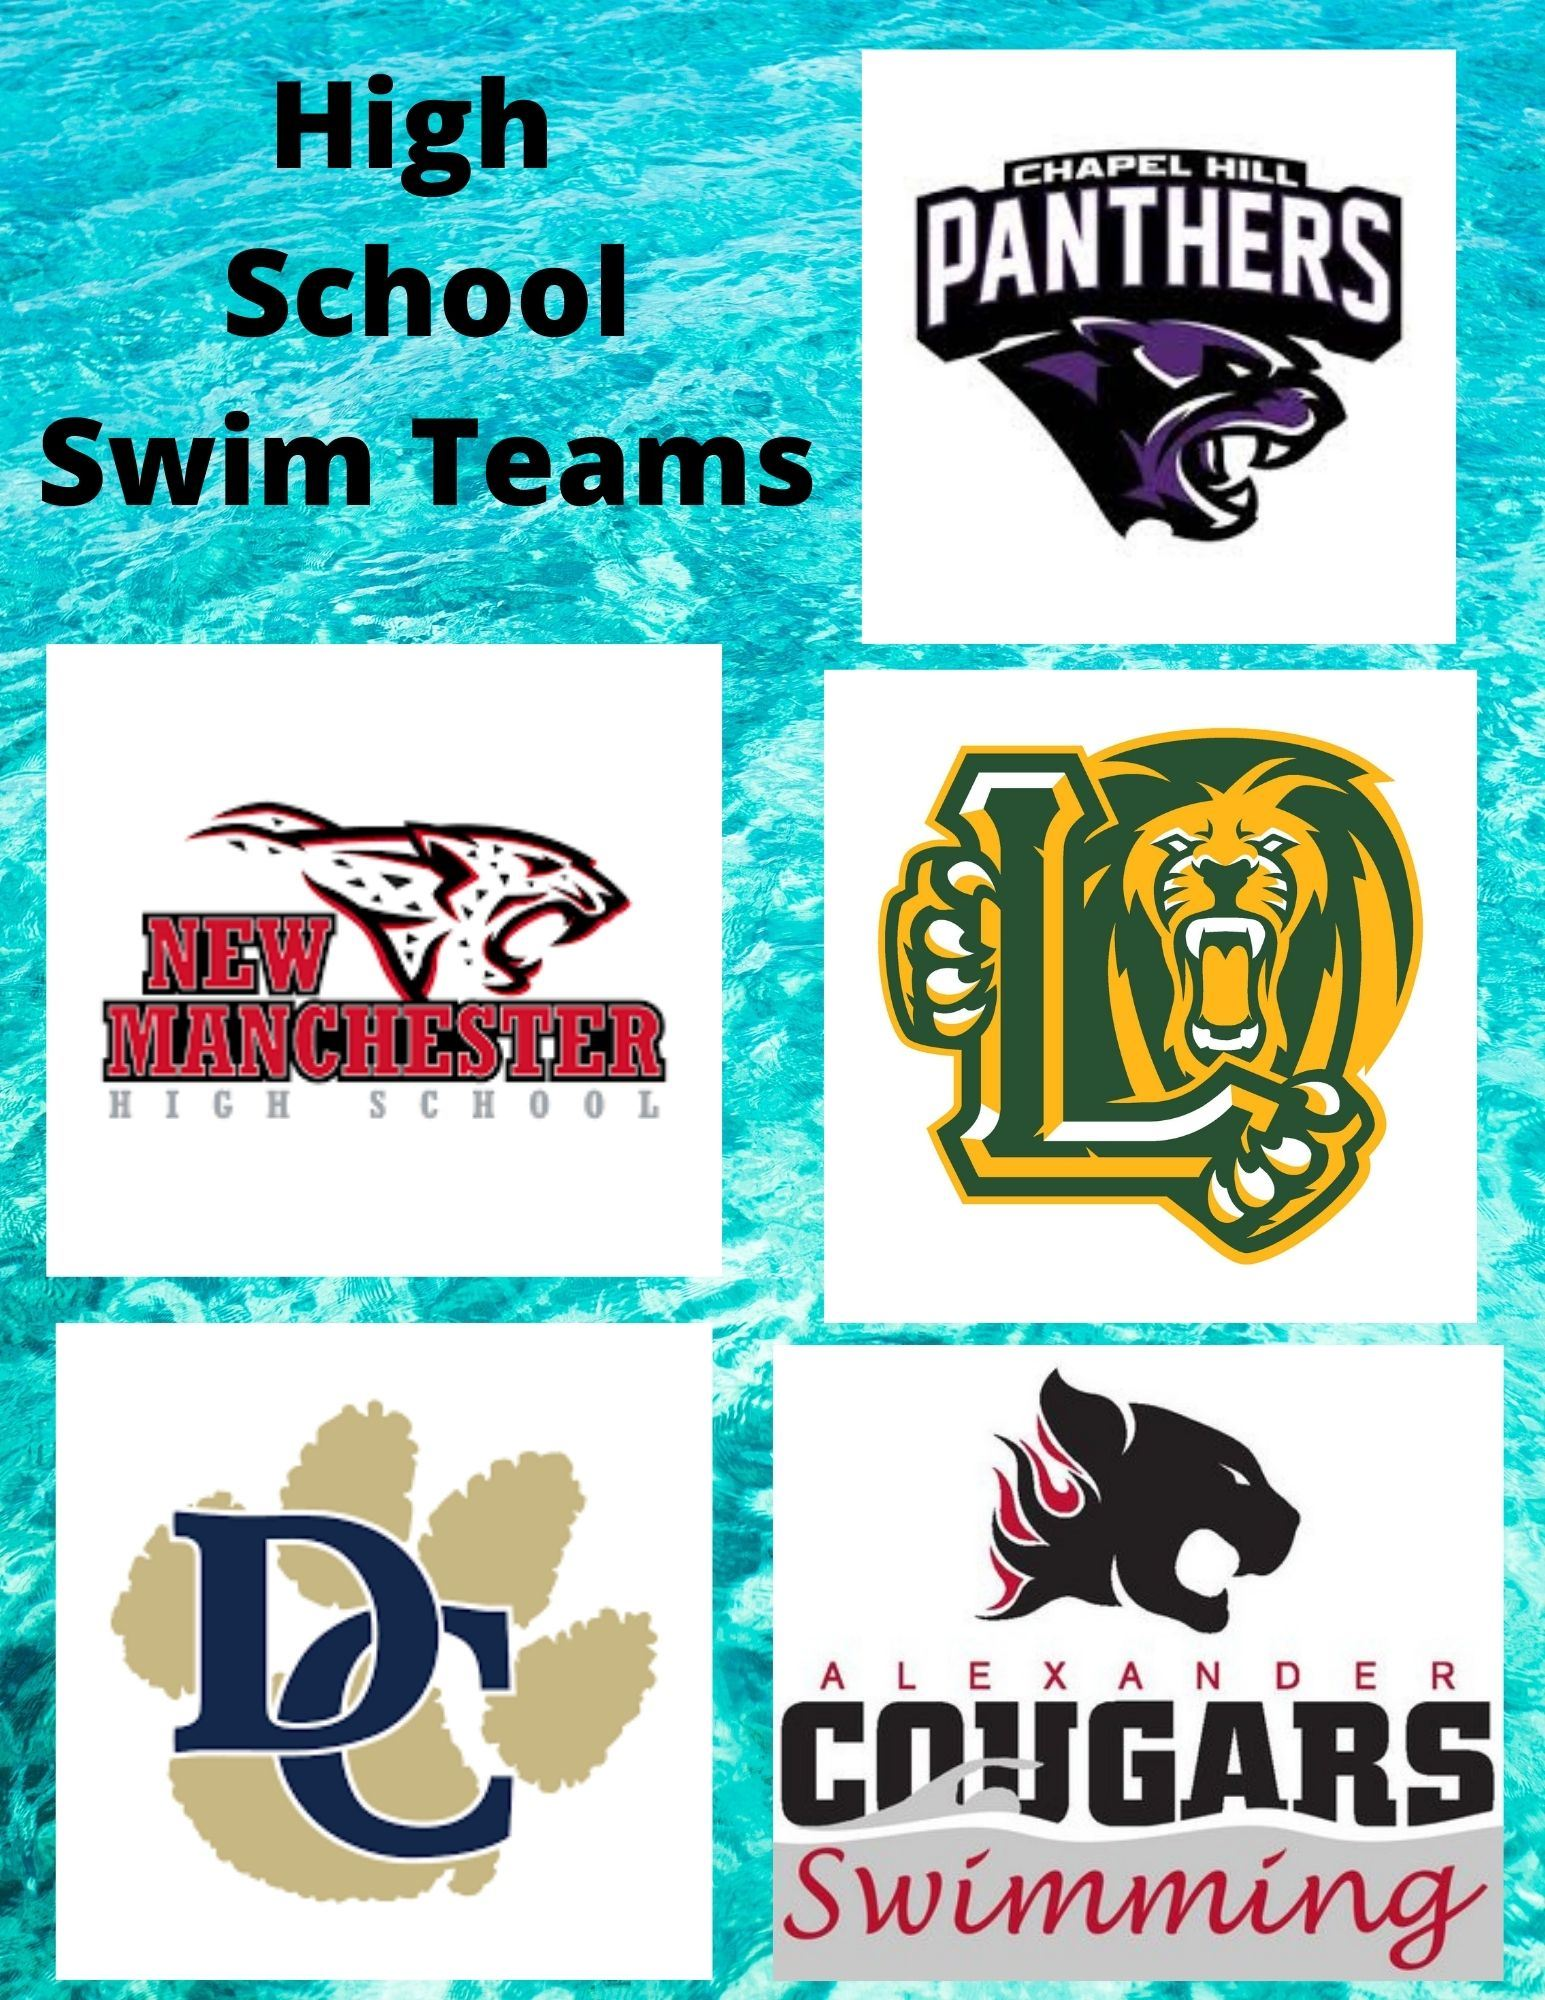 HIgh School Swim